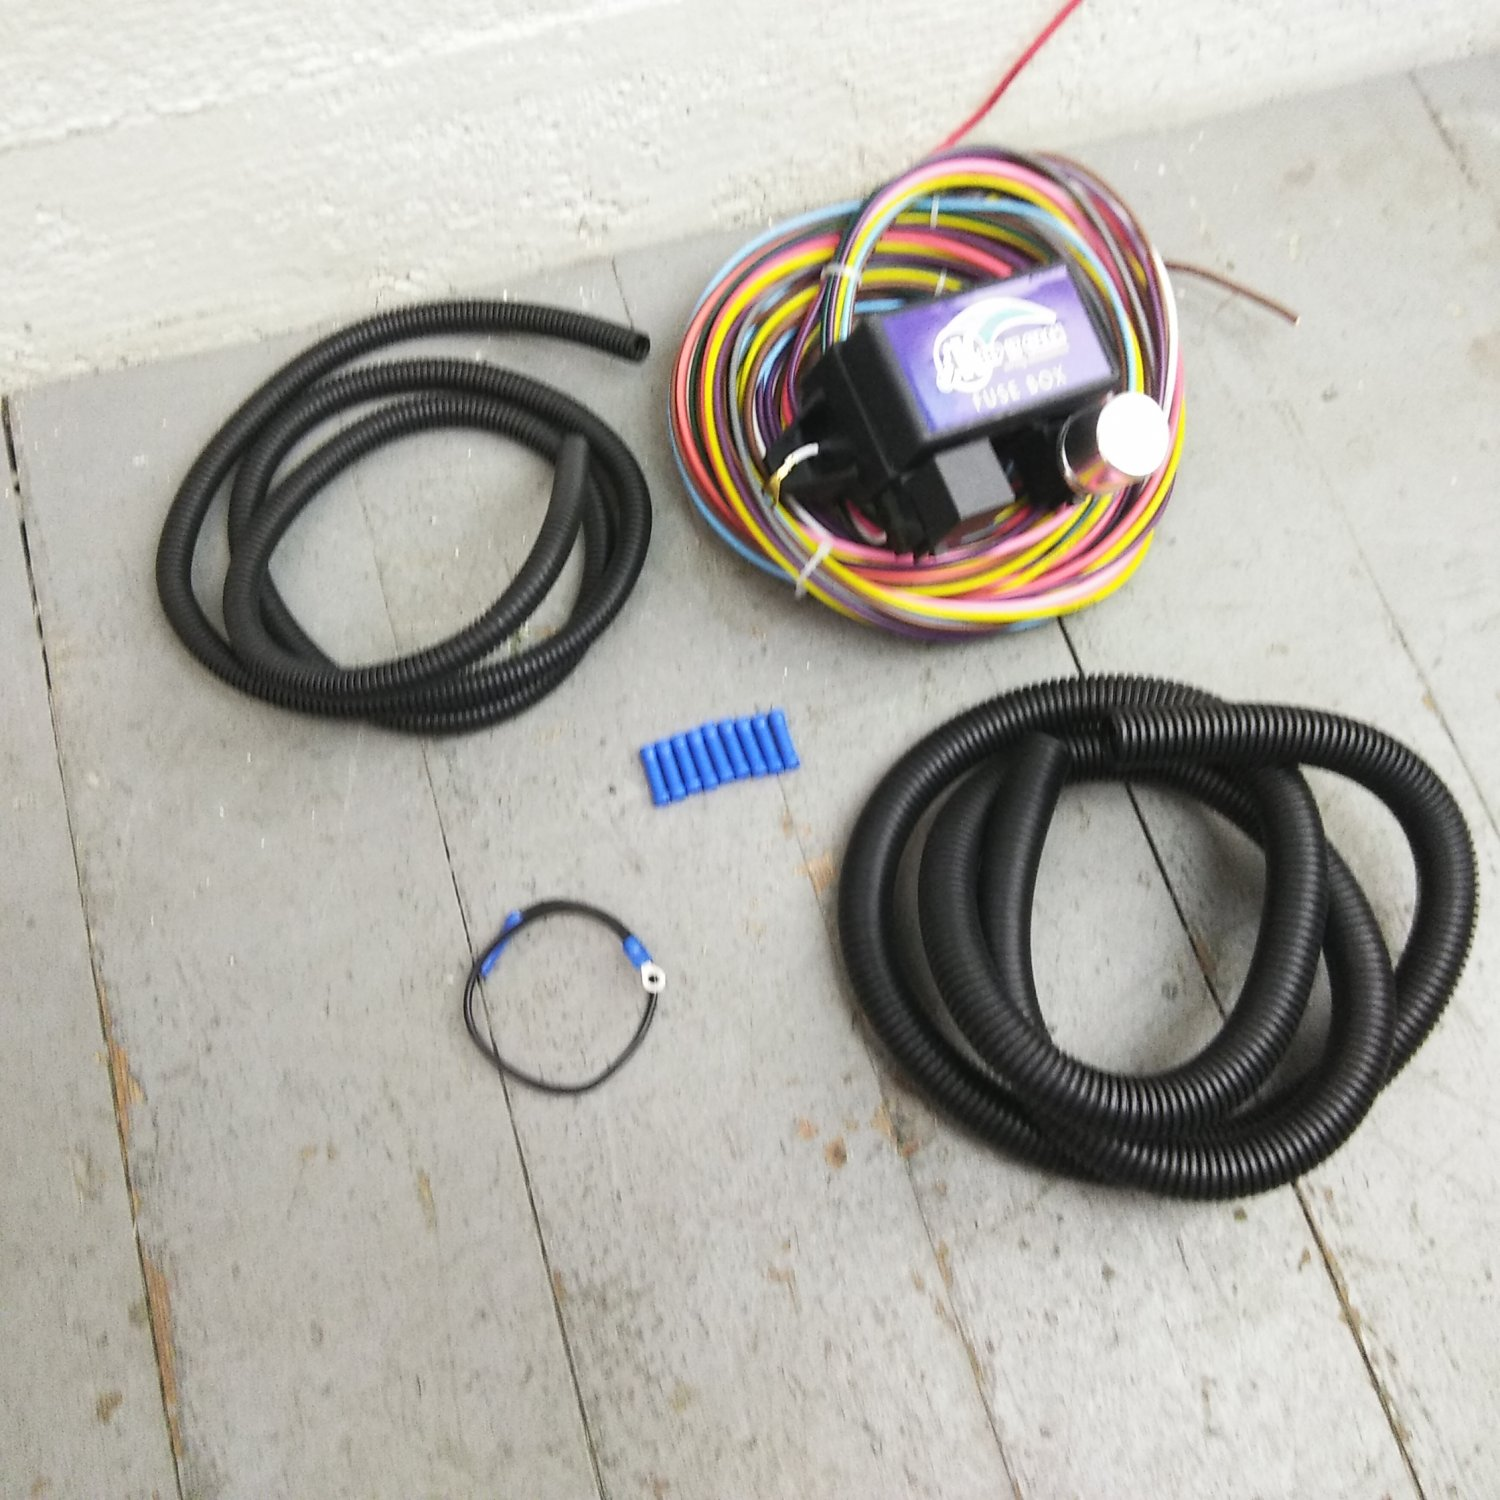 hight resolution of 12v 18 circuit 12 fuse universal wiring harness kit 1949 pontiac12v 18 circuit 12 fuse universal